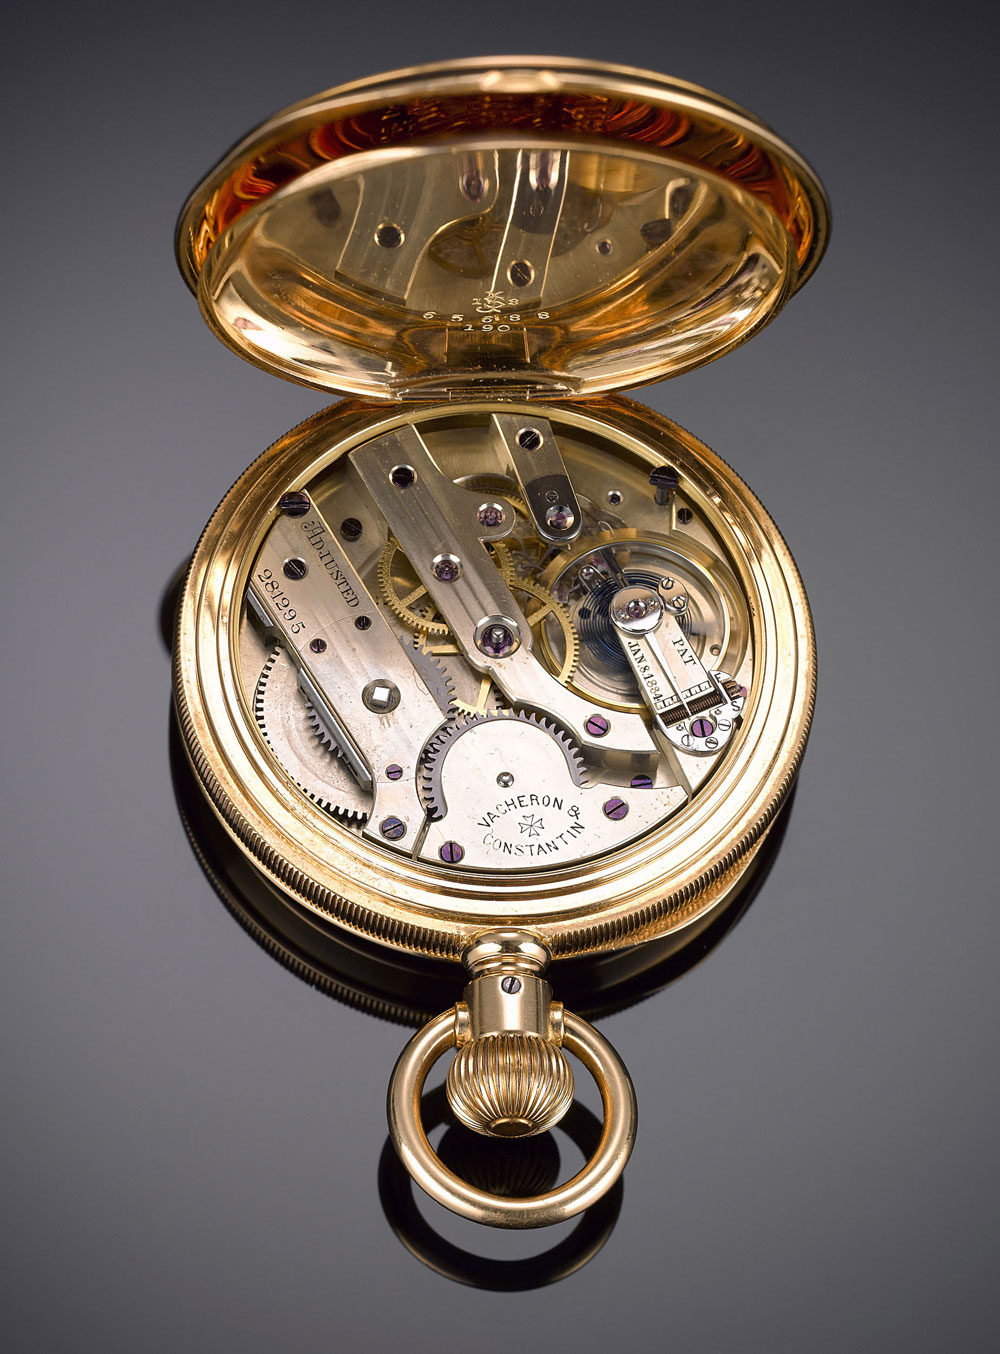 1889 Vacheron Constantin Gold Pocket Watch